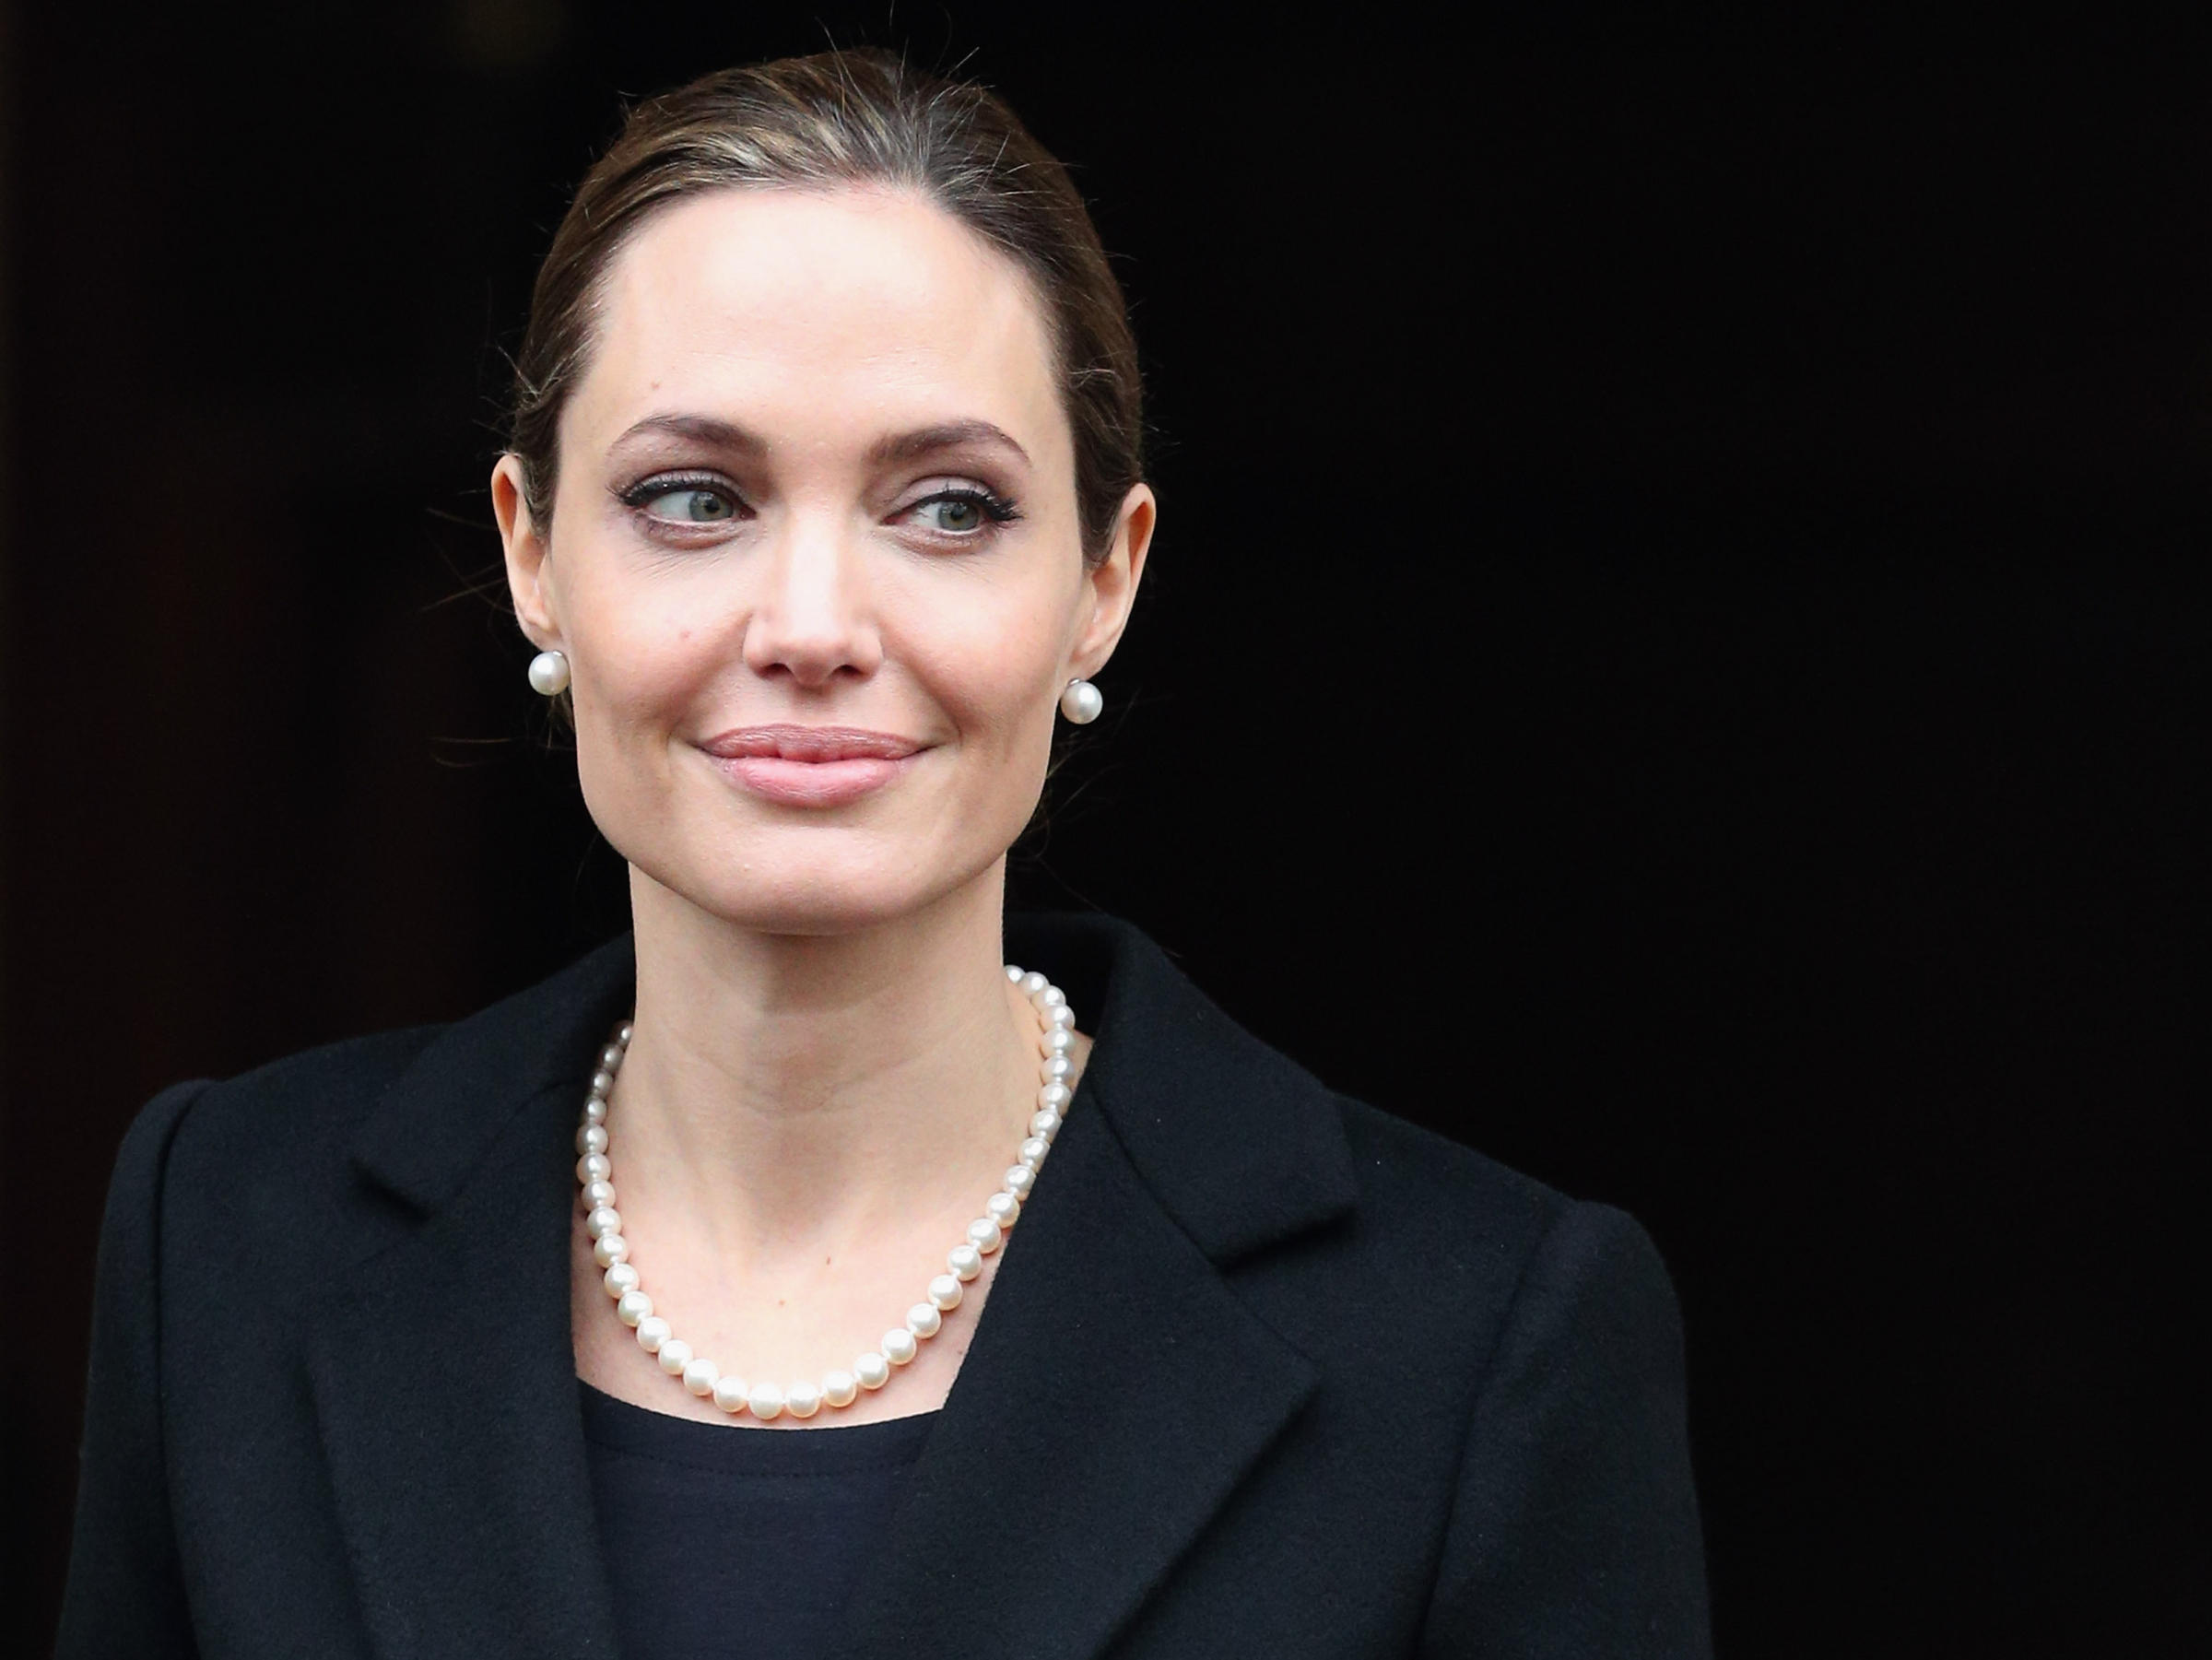 Angelina Jolie Bravely Reveals She Had A DoubleMastectomy Angelina Jolie Bravely Reveals She Had A DoubleMastectomy new pictures